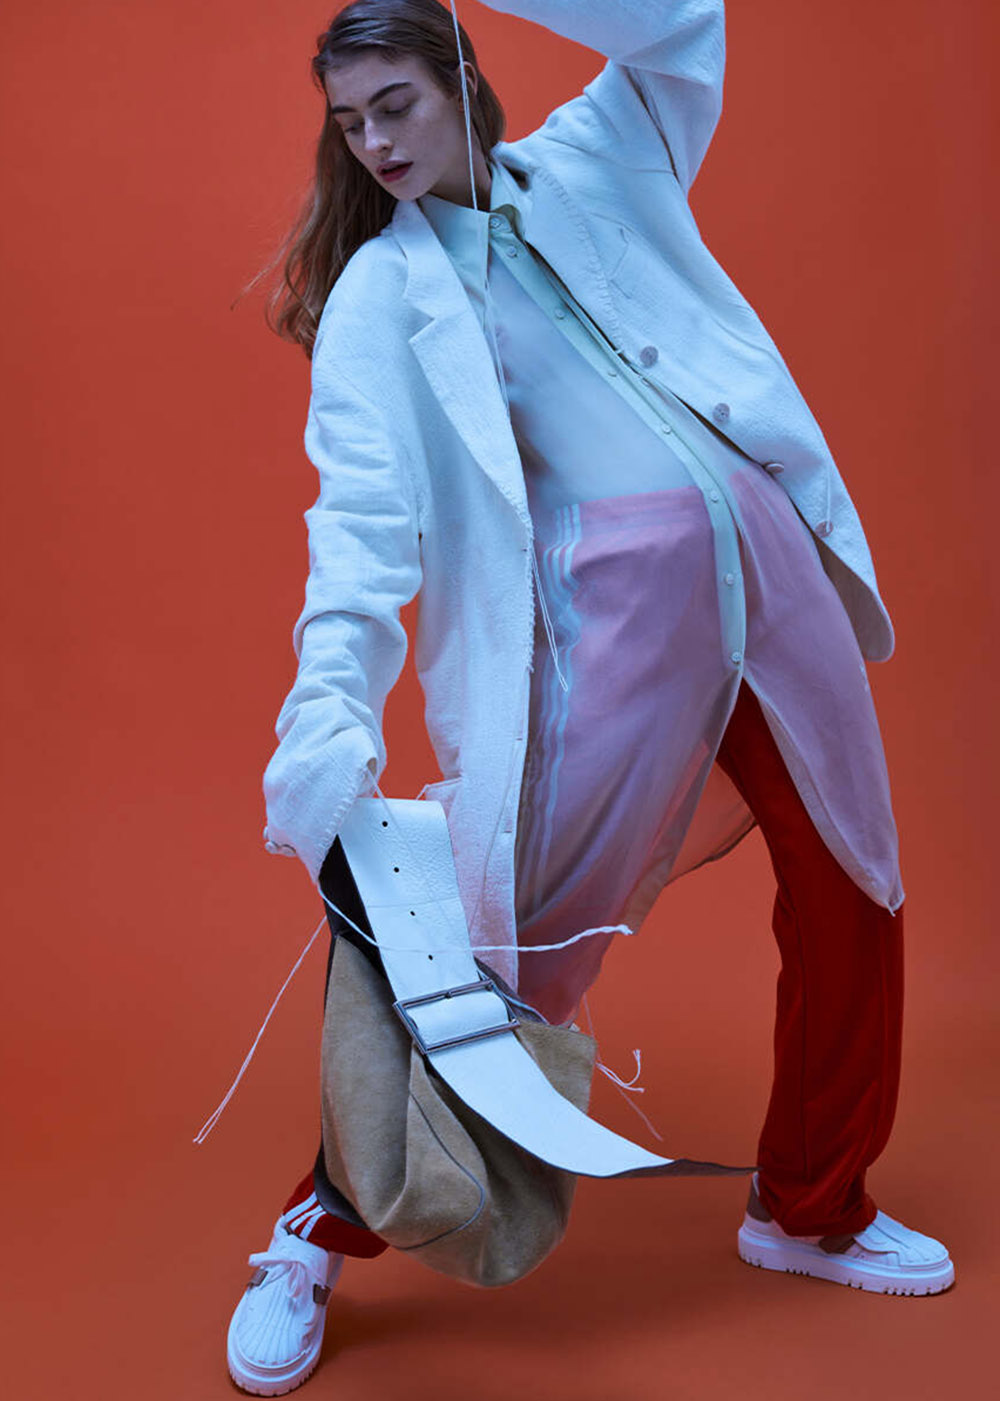 Berit Heitmann by Magnus Magnusson for Vogue Russia February 2021